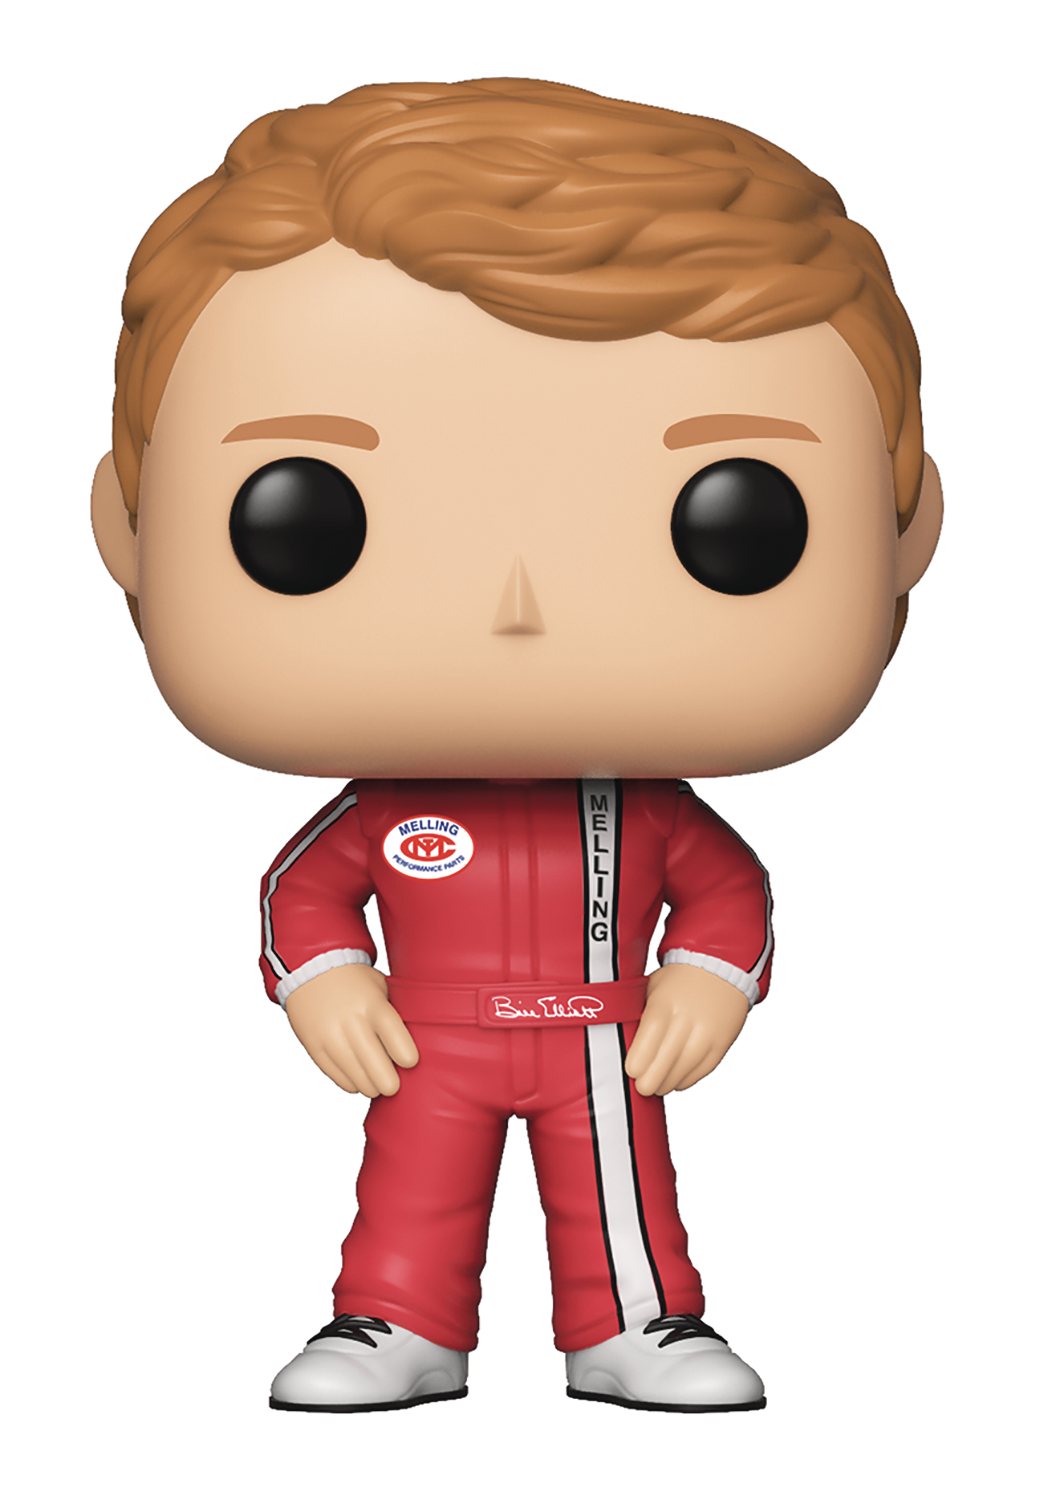 POP NASCAR BILL ELLIOTT VINYL FIG